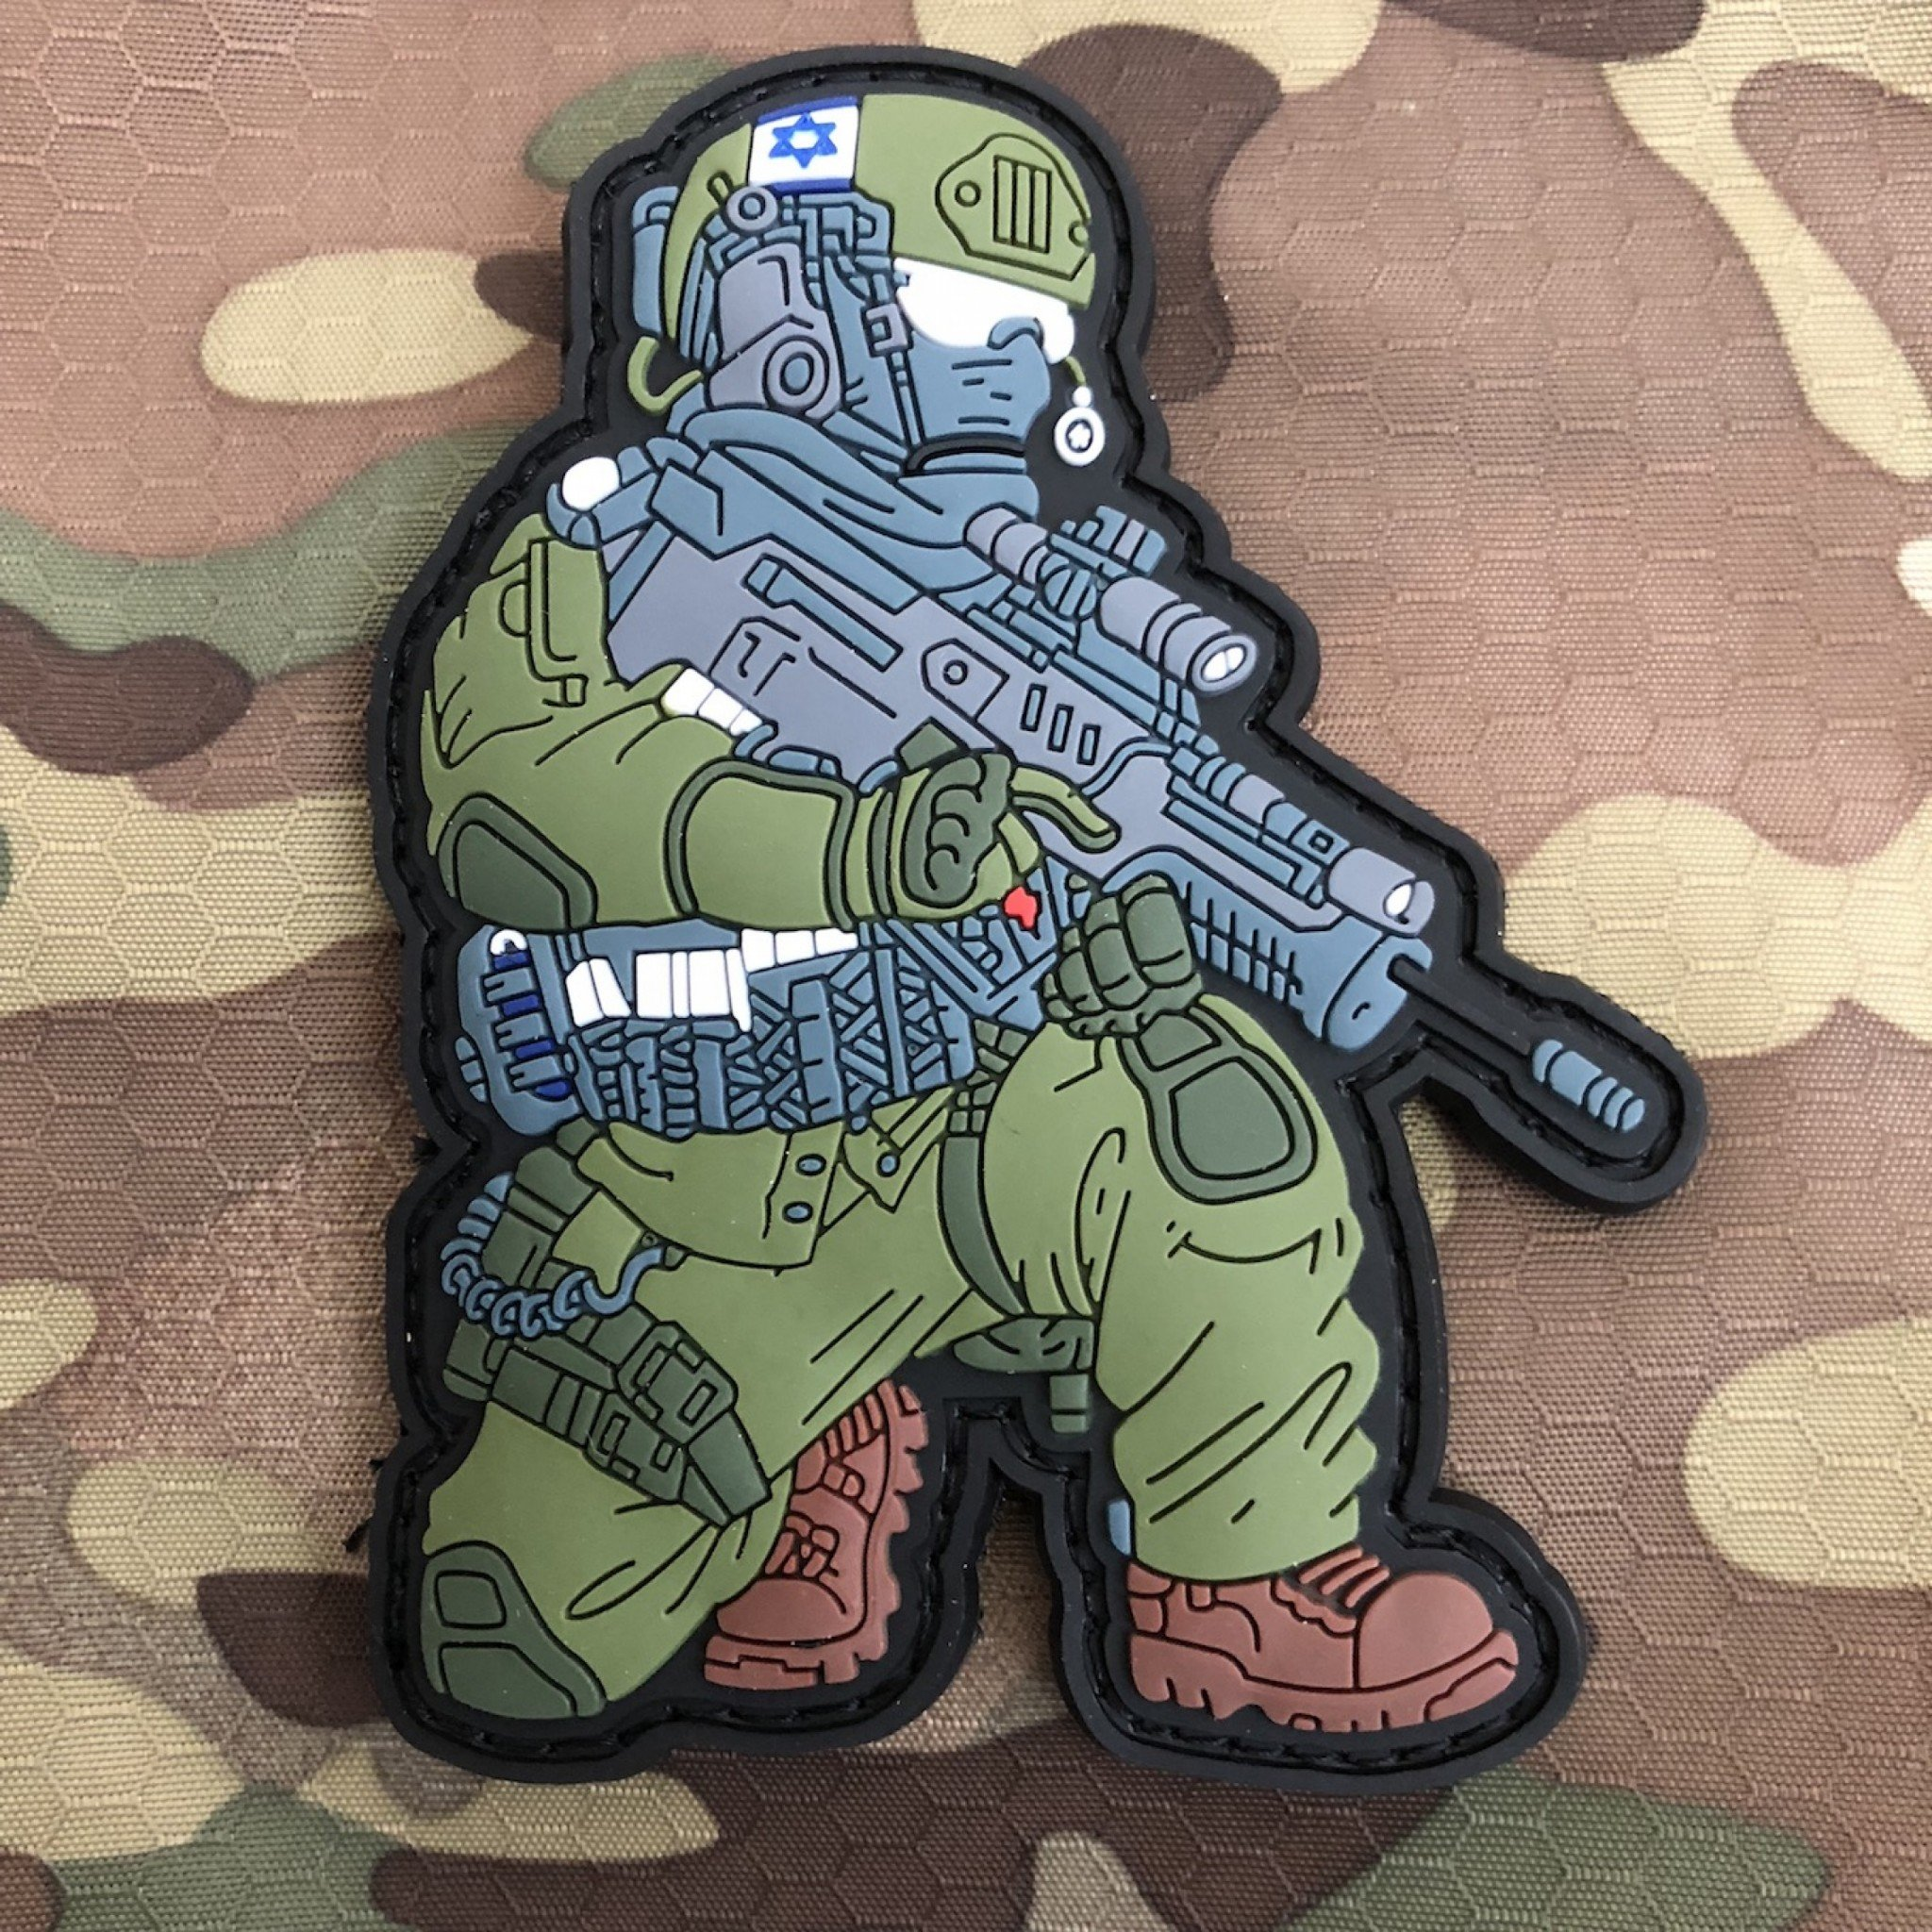 IDF – Israel Defense Forces Operator Patch – Tzahal